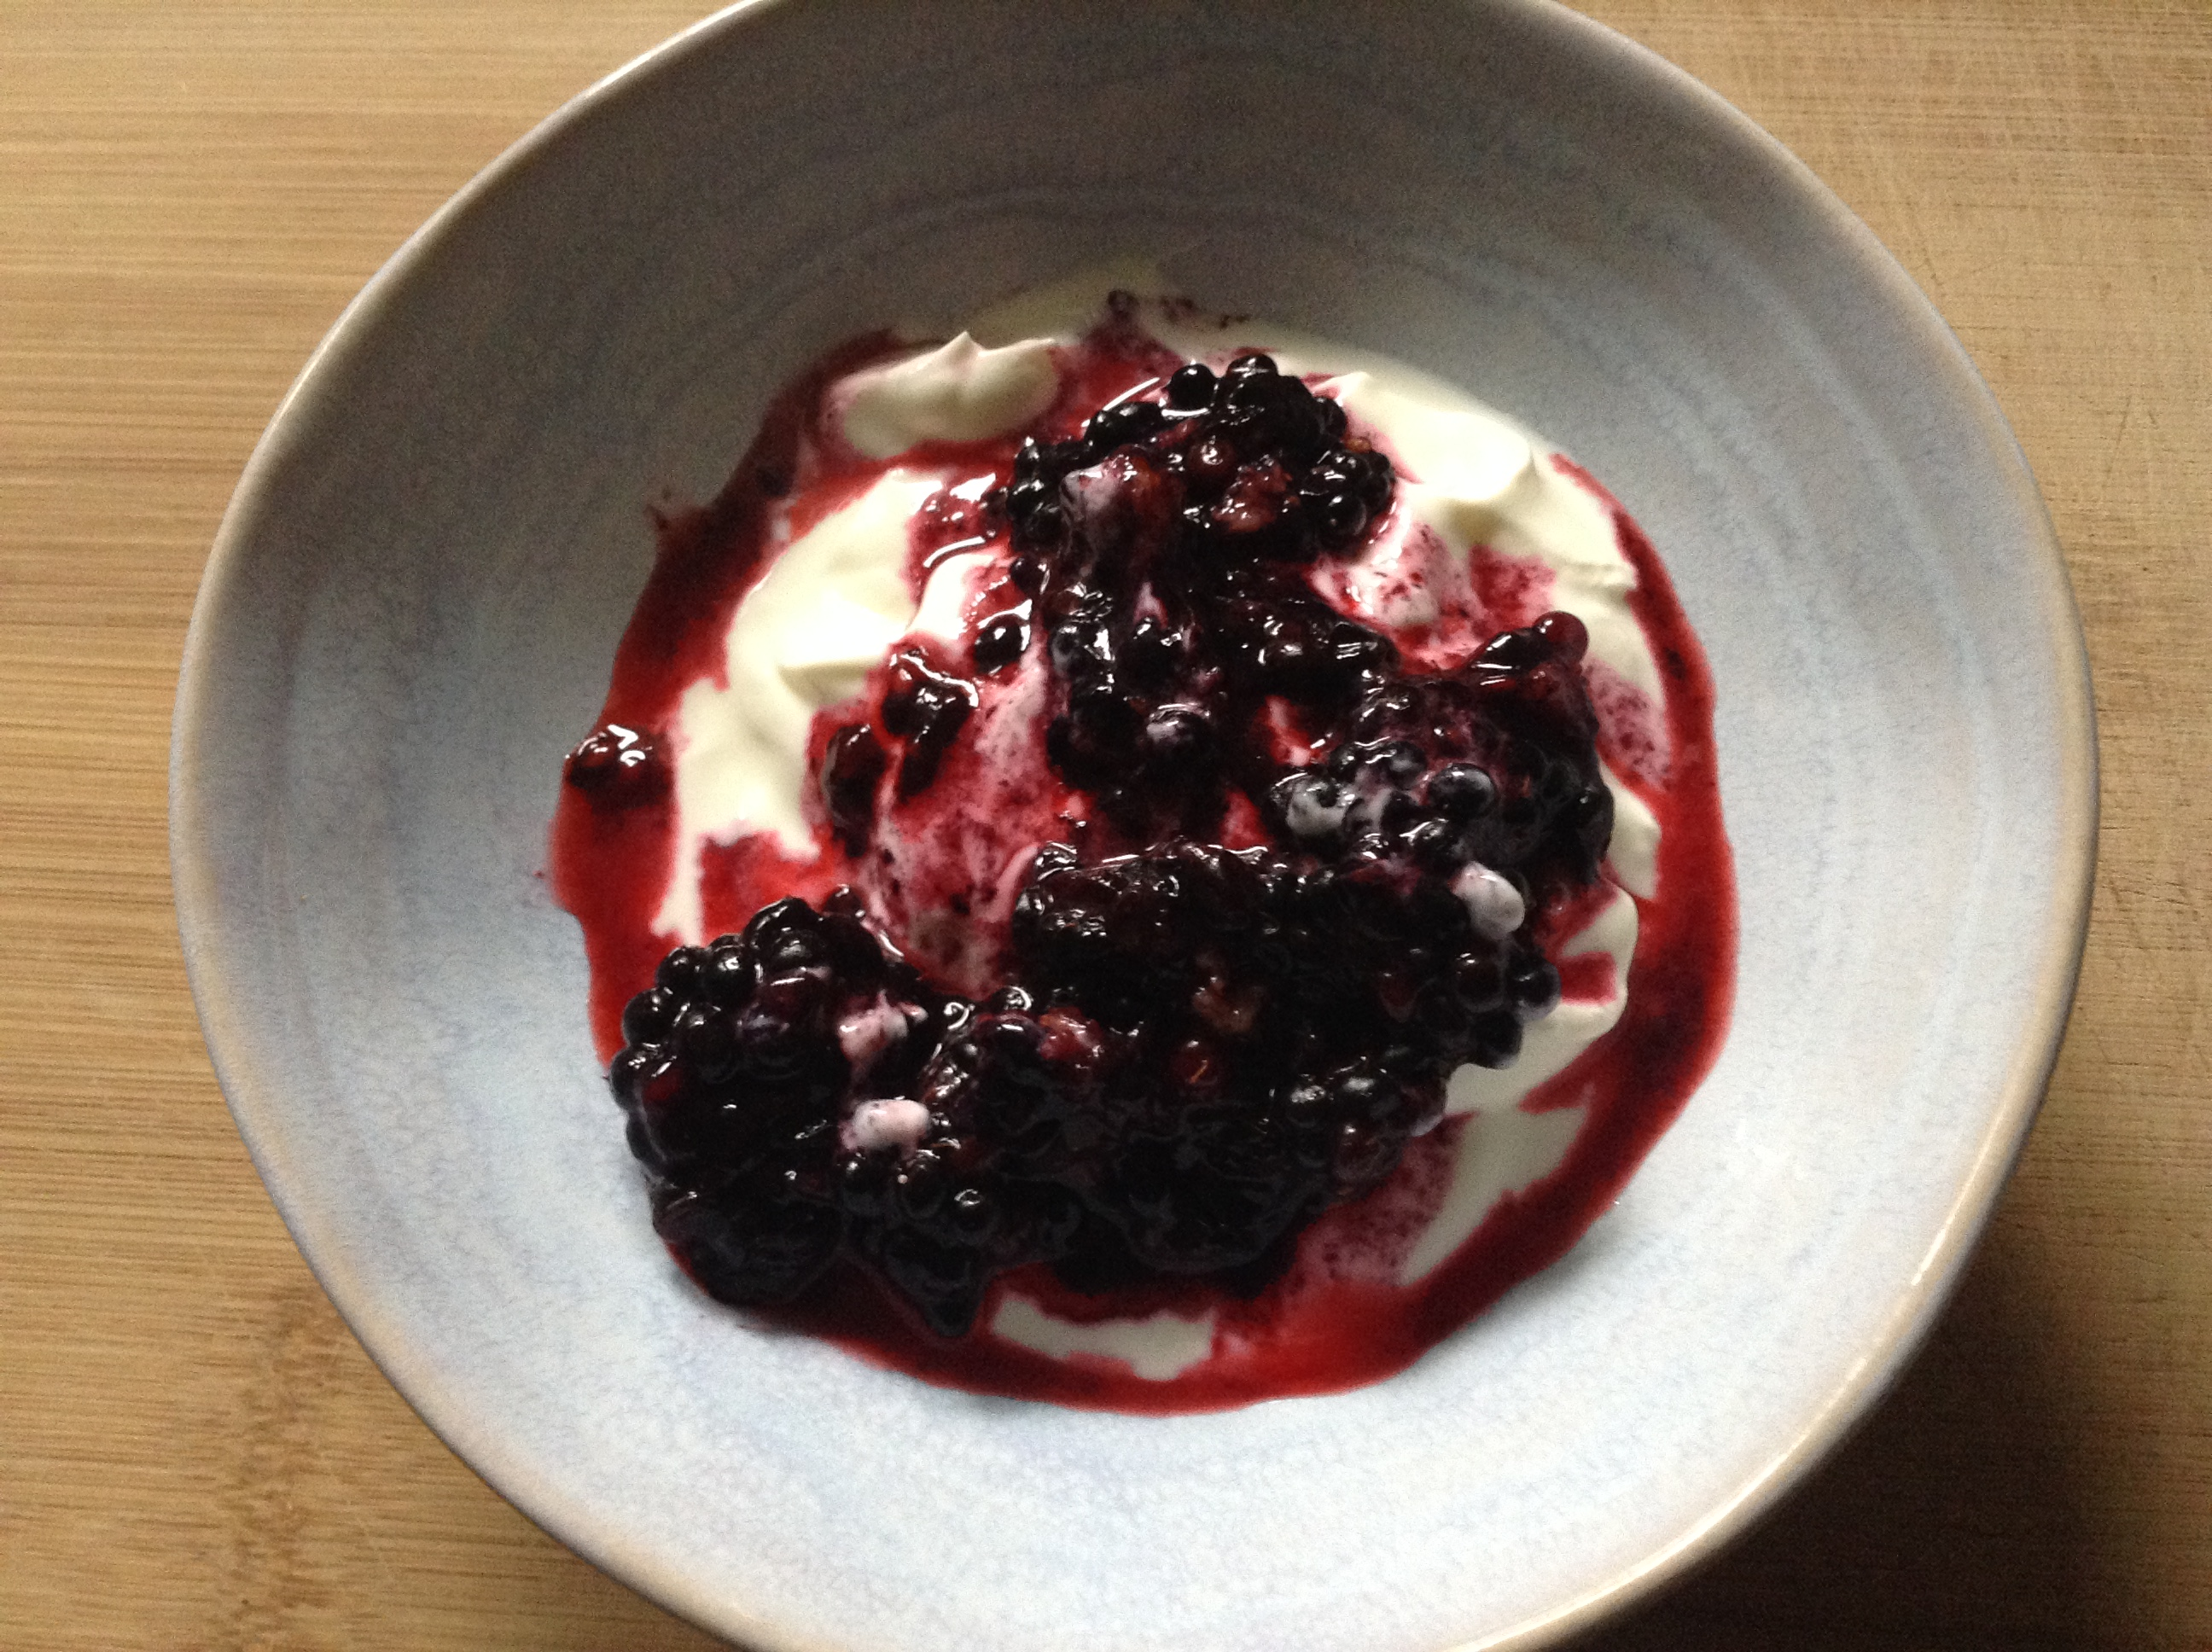 Greek yogurt and blackberries coulis